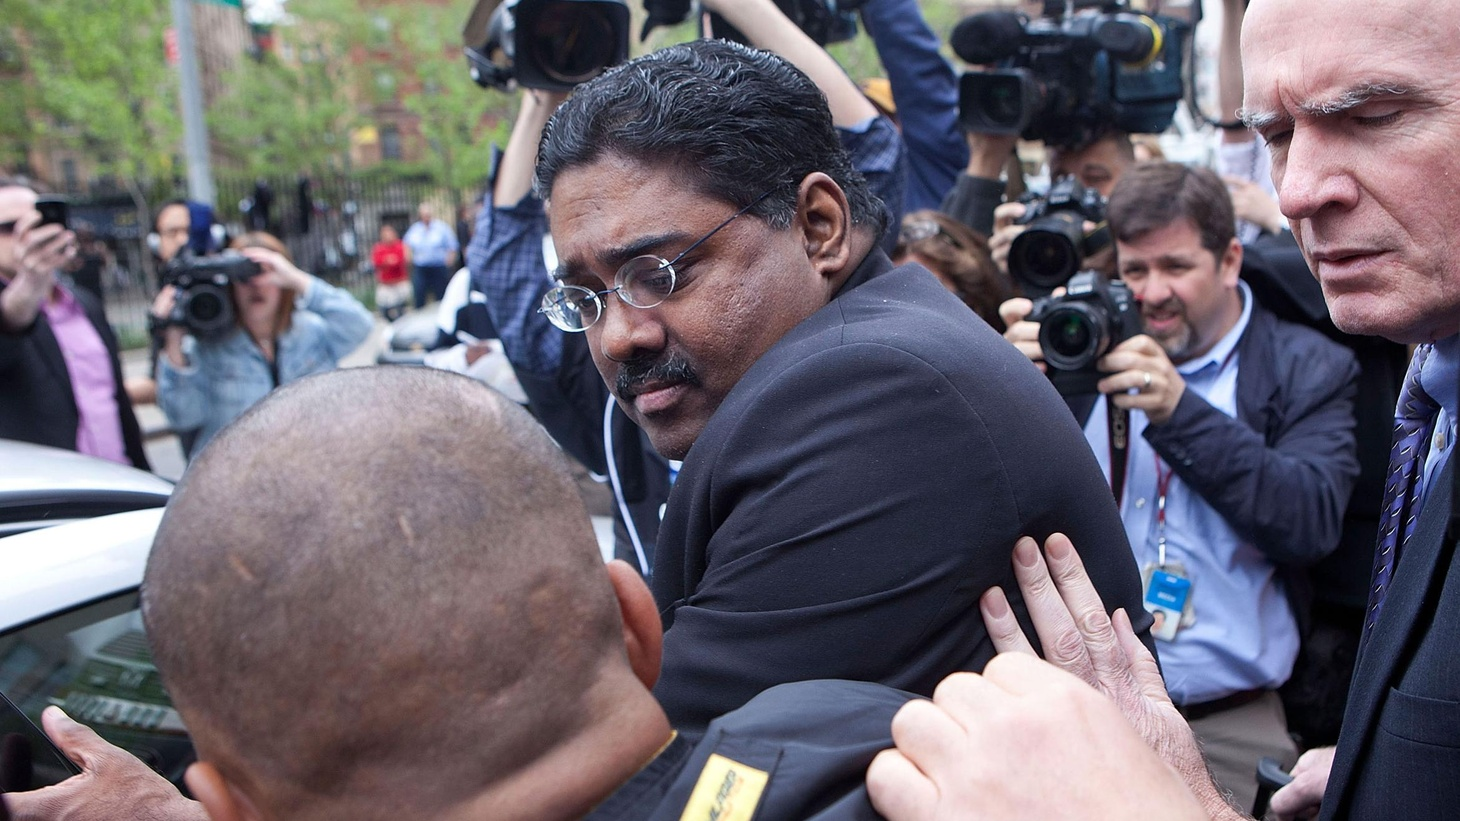 After the jury heard his wire-tapped phone conversations with financial tipsters, billionaire hedge-fund manager Raj Rajaratnam was found guilty...